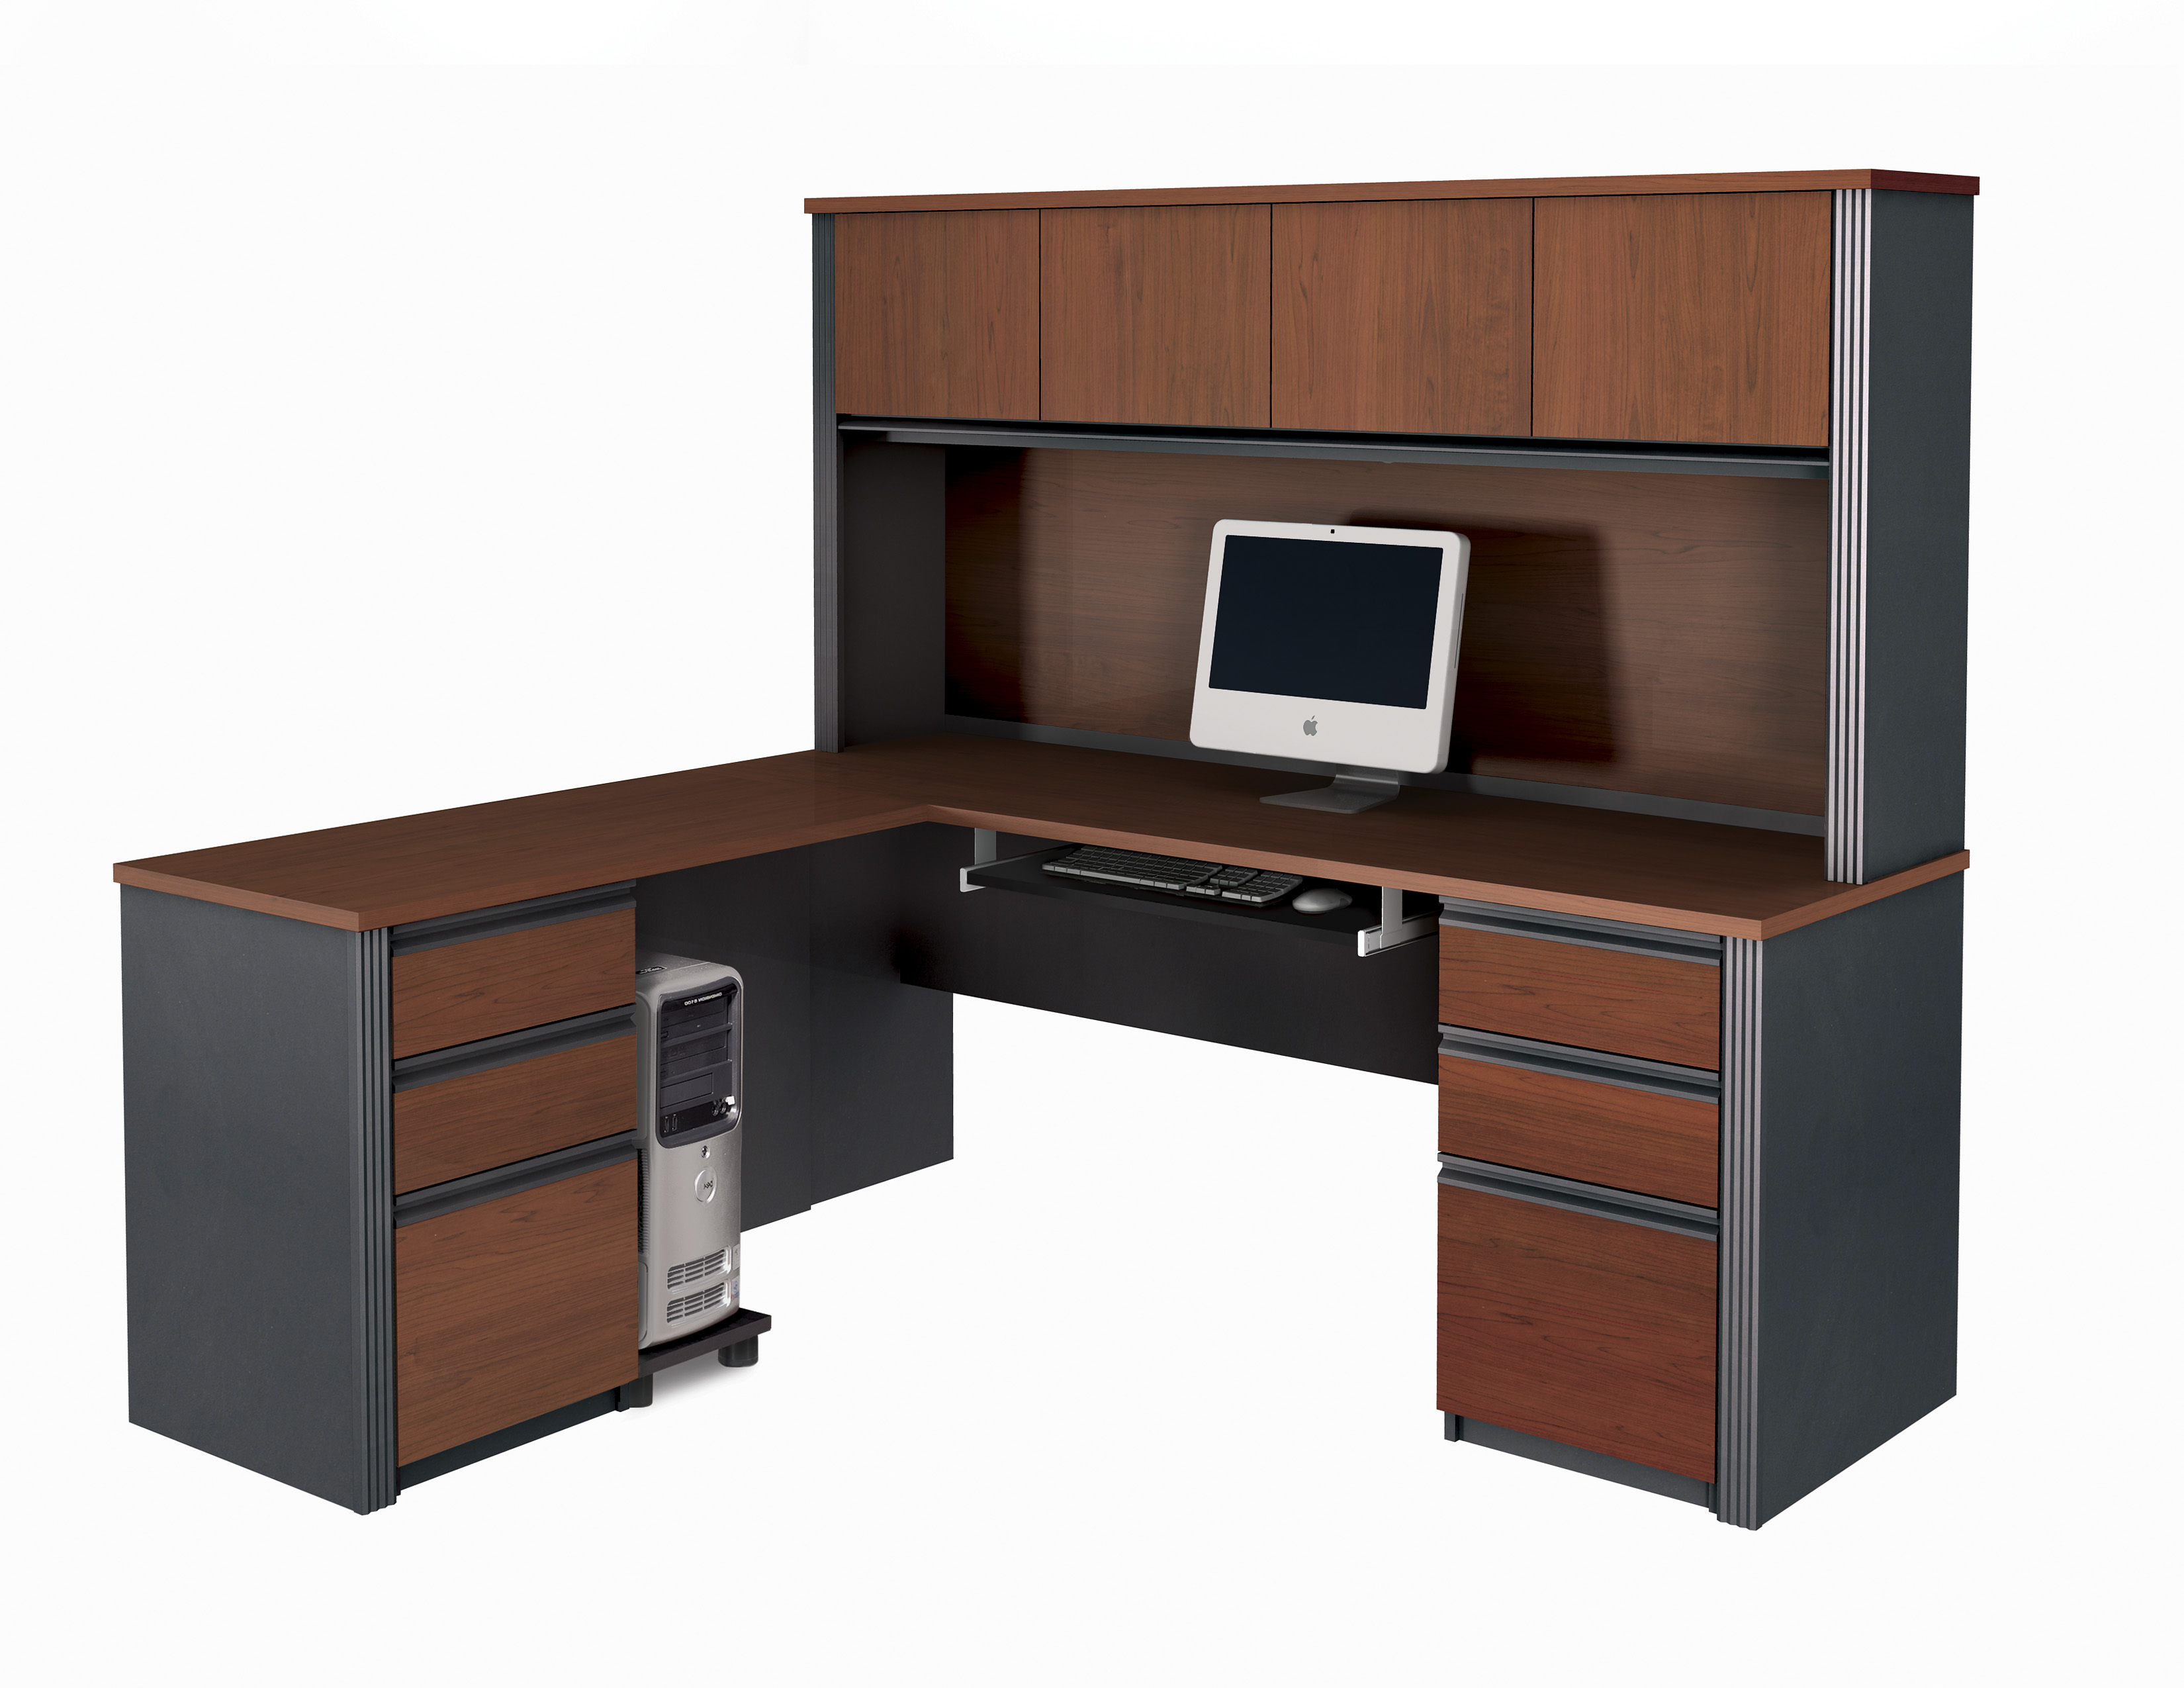 Executive Espresso Dark Brown Veneer Mixed Black Solid Wood Corner Computer Desk For Small Space Saving Ideas With Slide Out Keyboard Shelf And Equipped